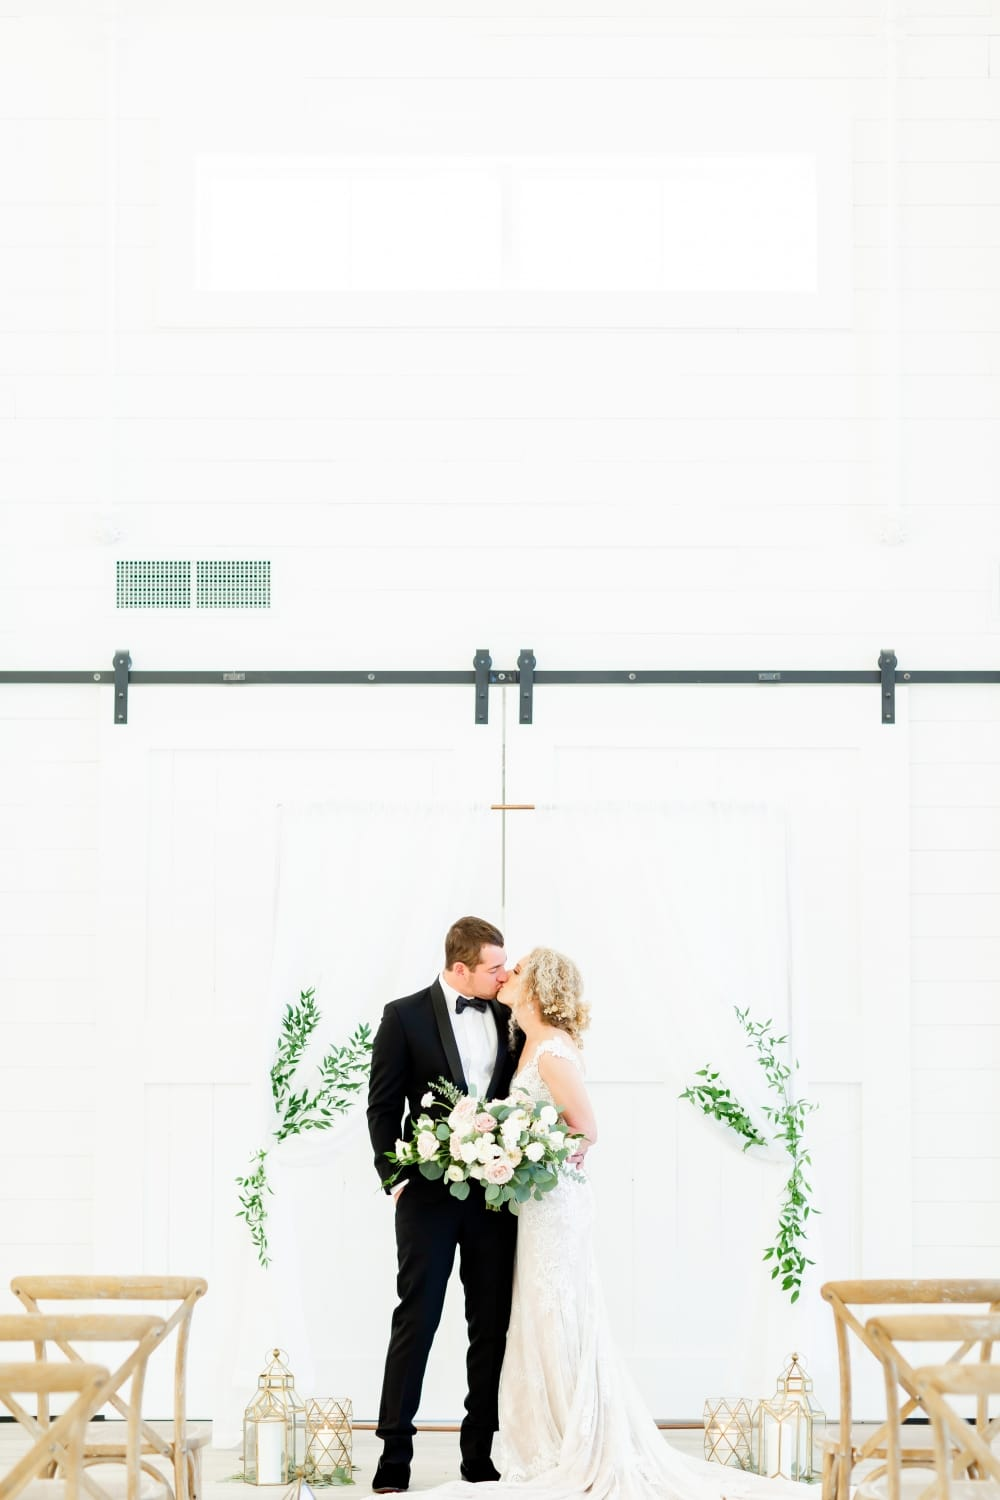 white grand barn doors with wedded couple in front kissing during ceremony